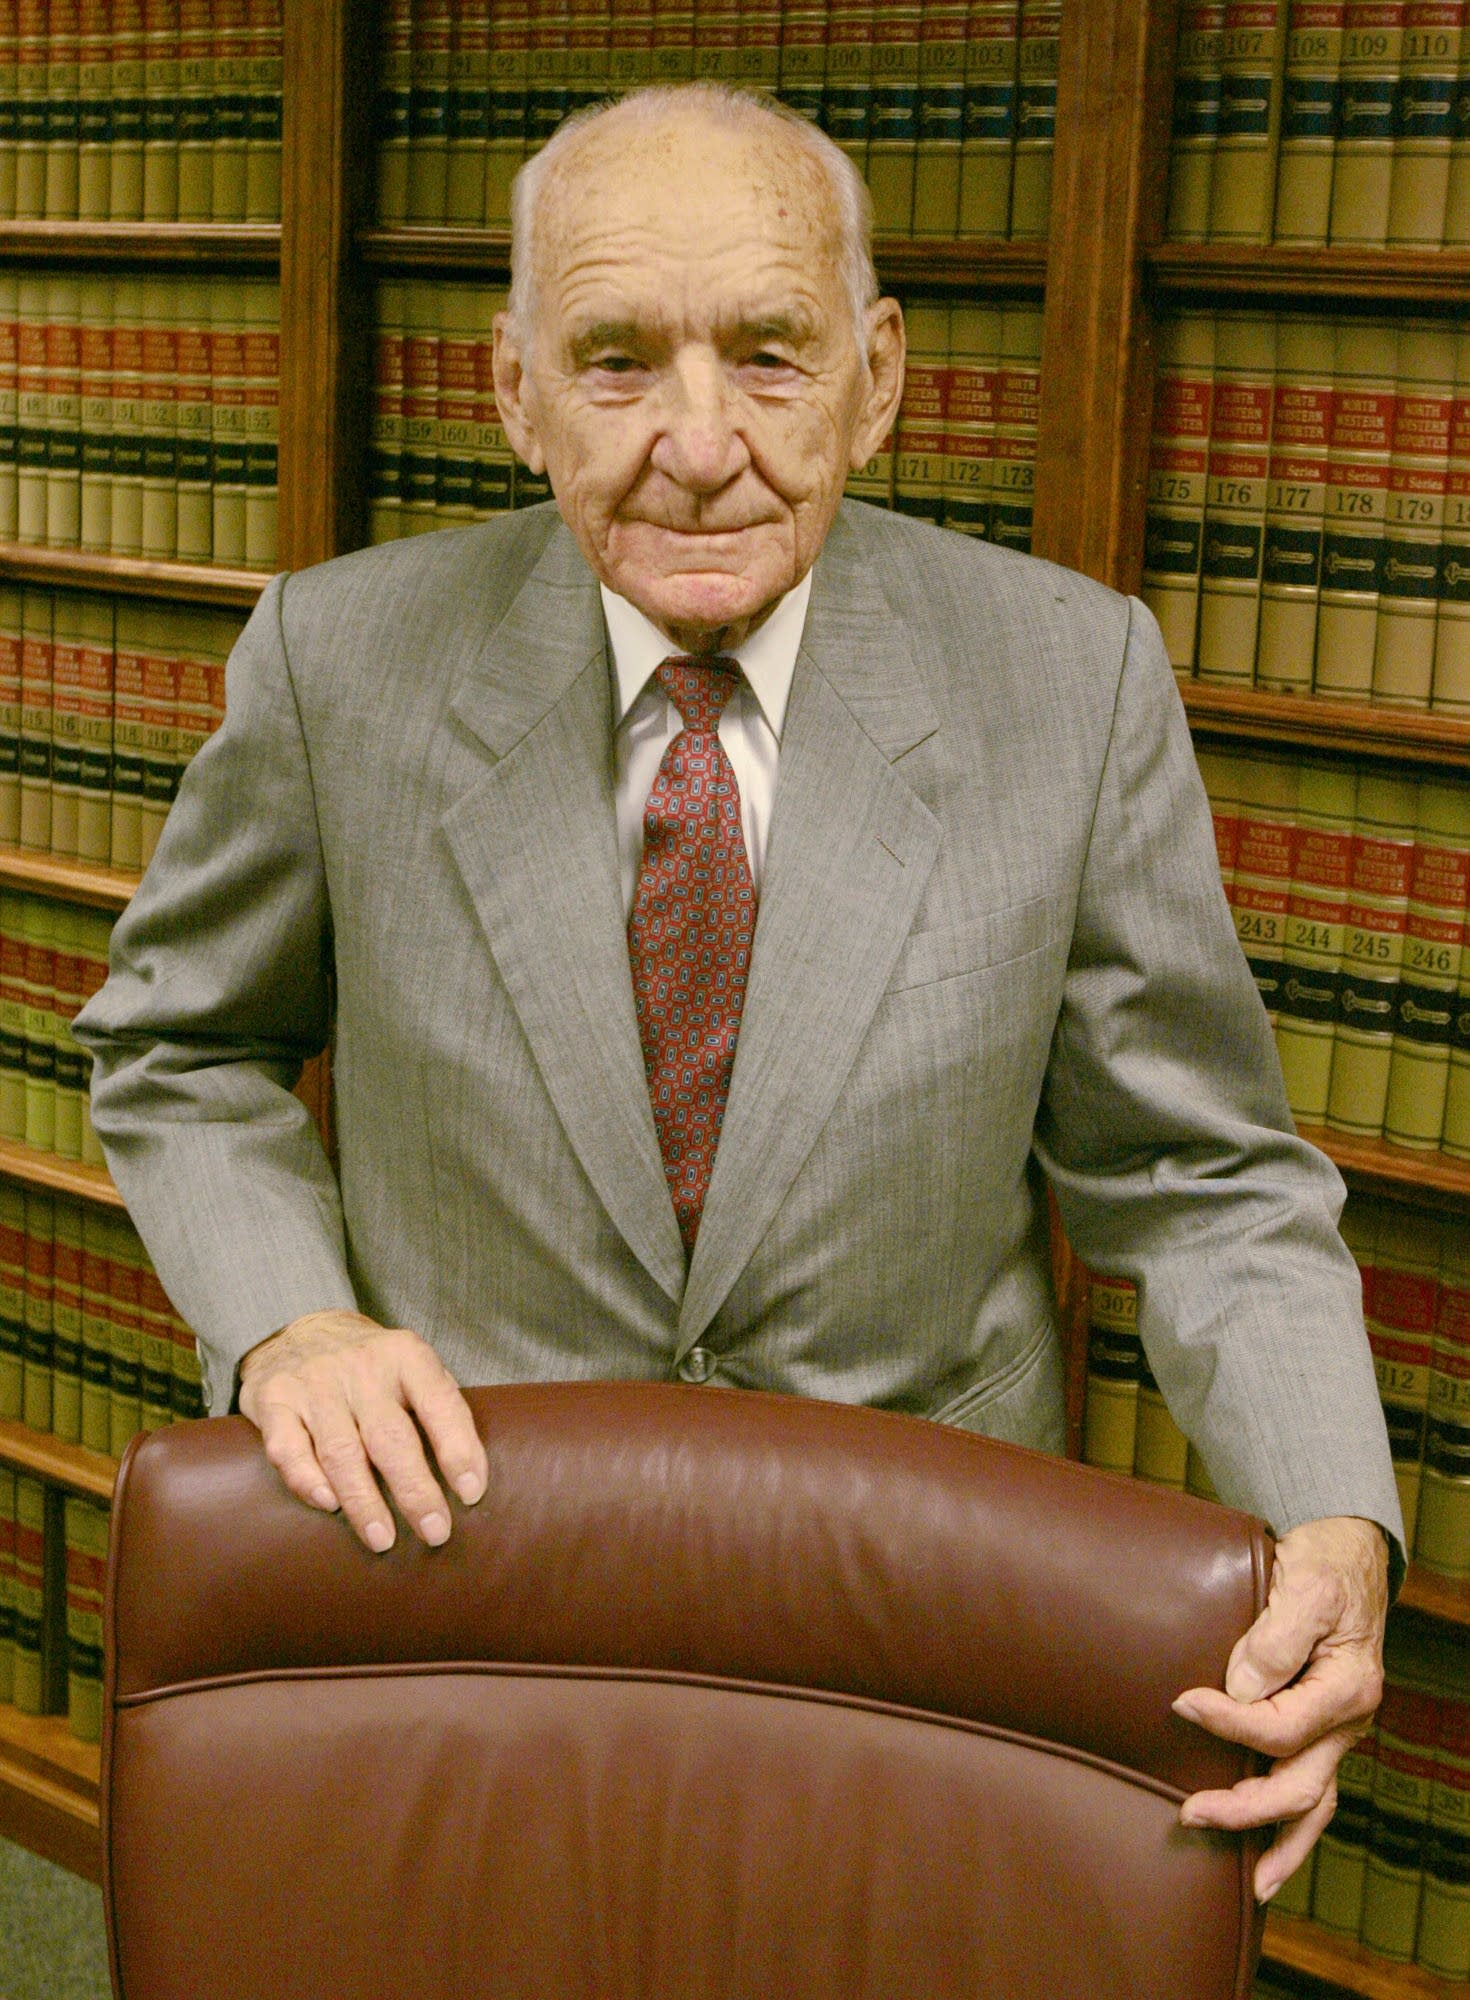 Retired Judge Miles Lord in 2005